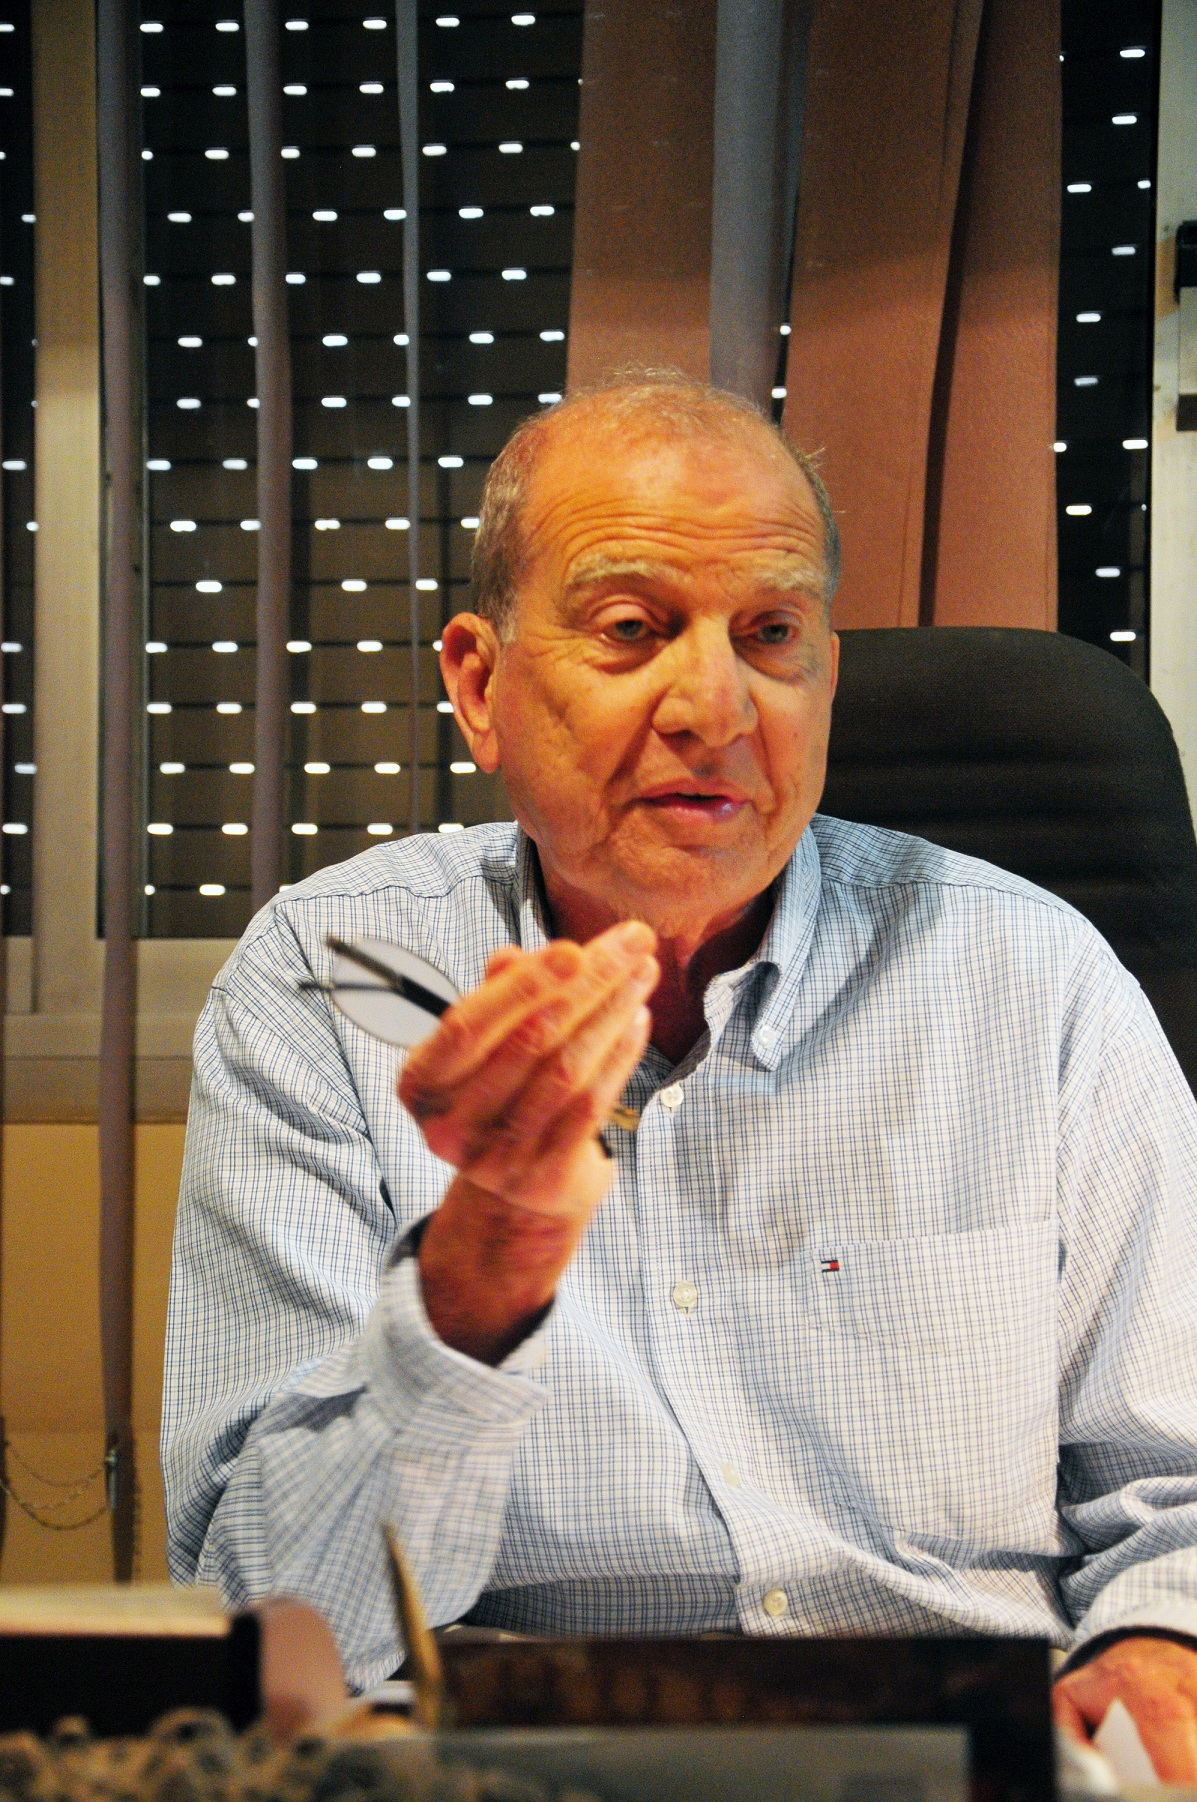 Head of the Egyptian Social Democratic Party, Mohamed Aboul-Ghar (Photo by Hassan Ibrahim)